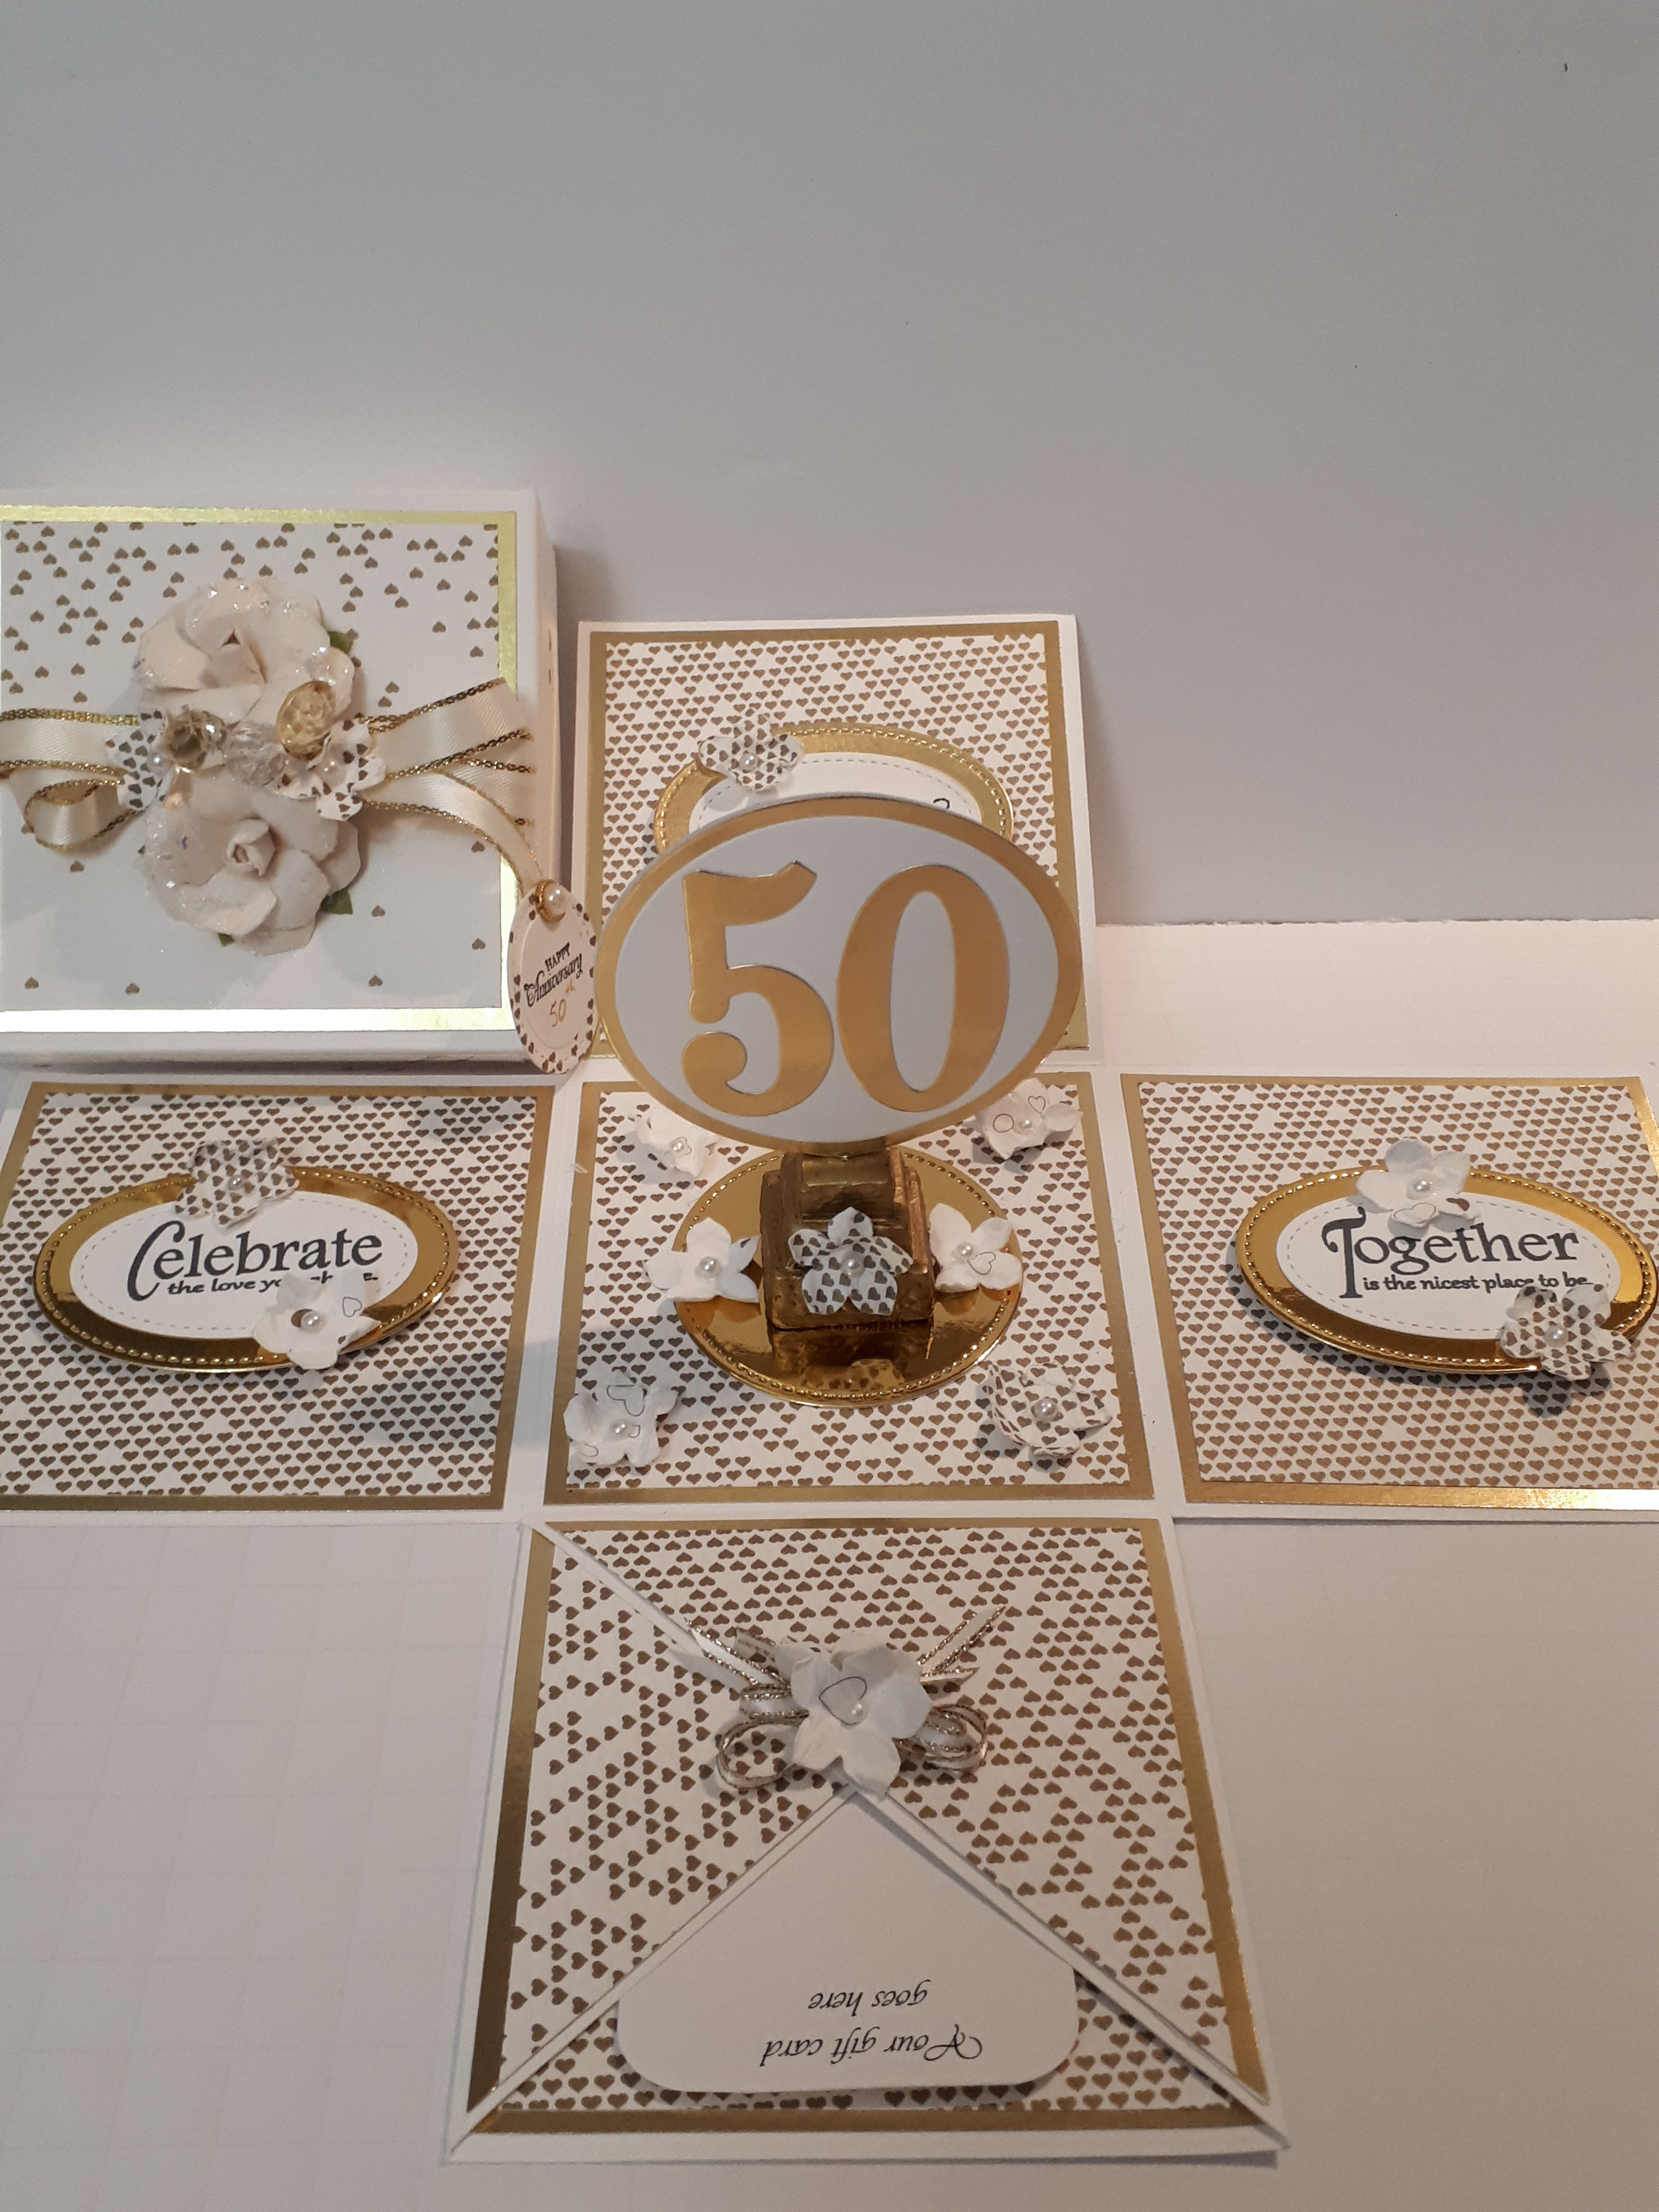 50th Wedding Anniversary Exploding Box Card Exploding Box Card Anniversary Cards Handmade 50th Anniversary Cards